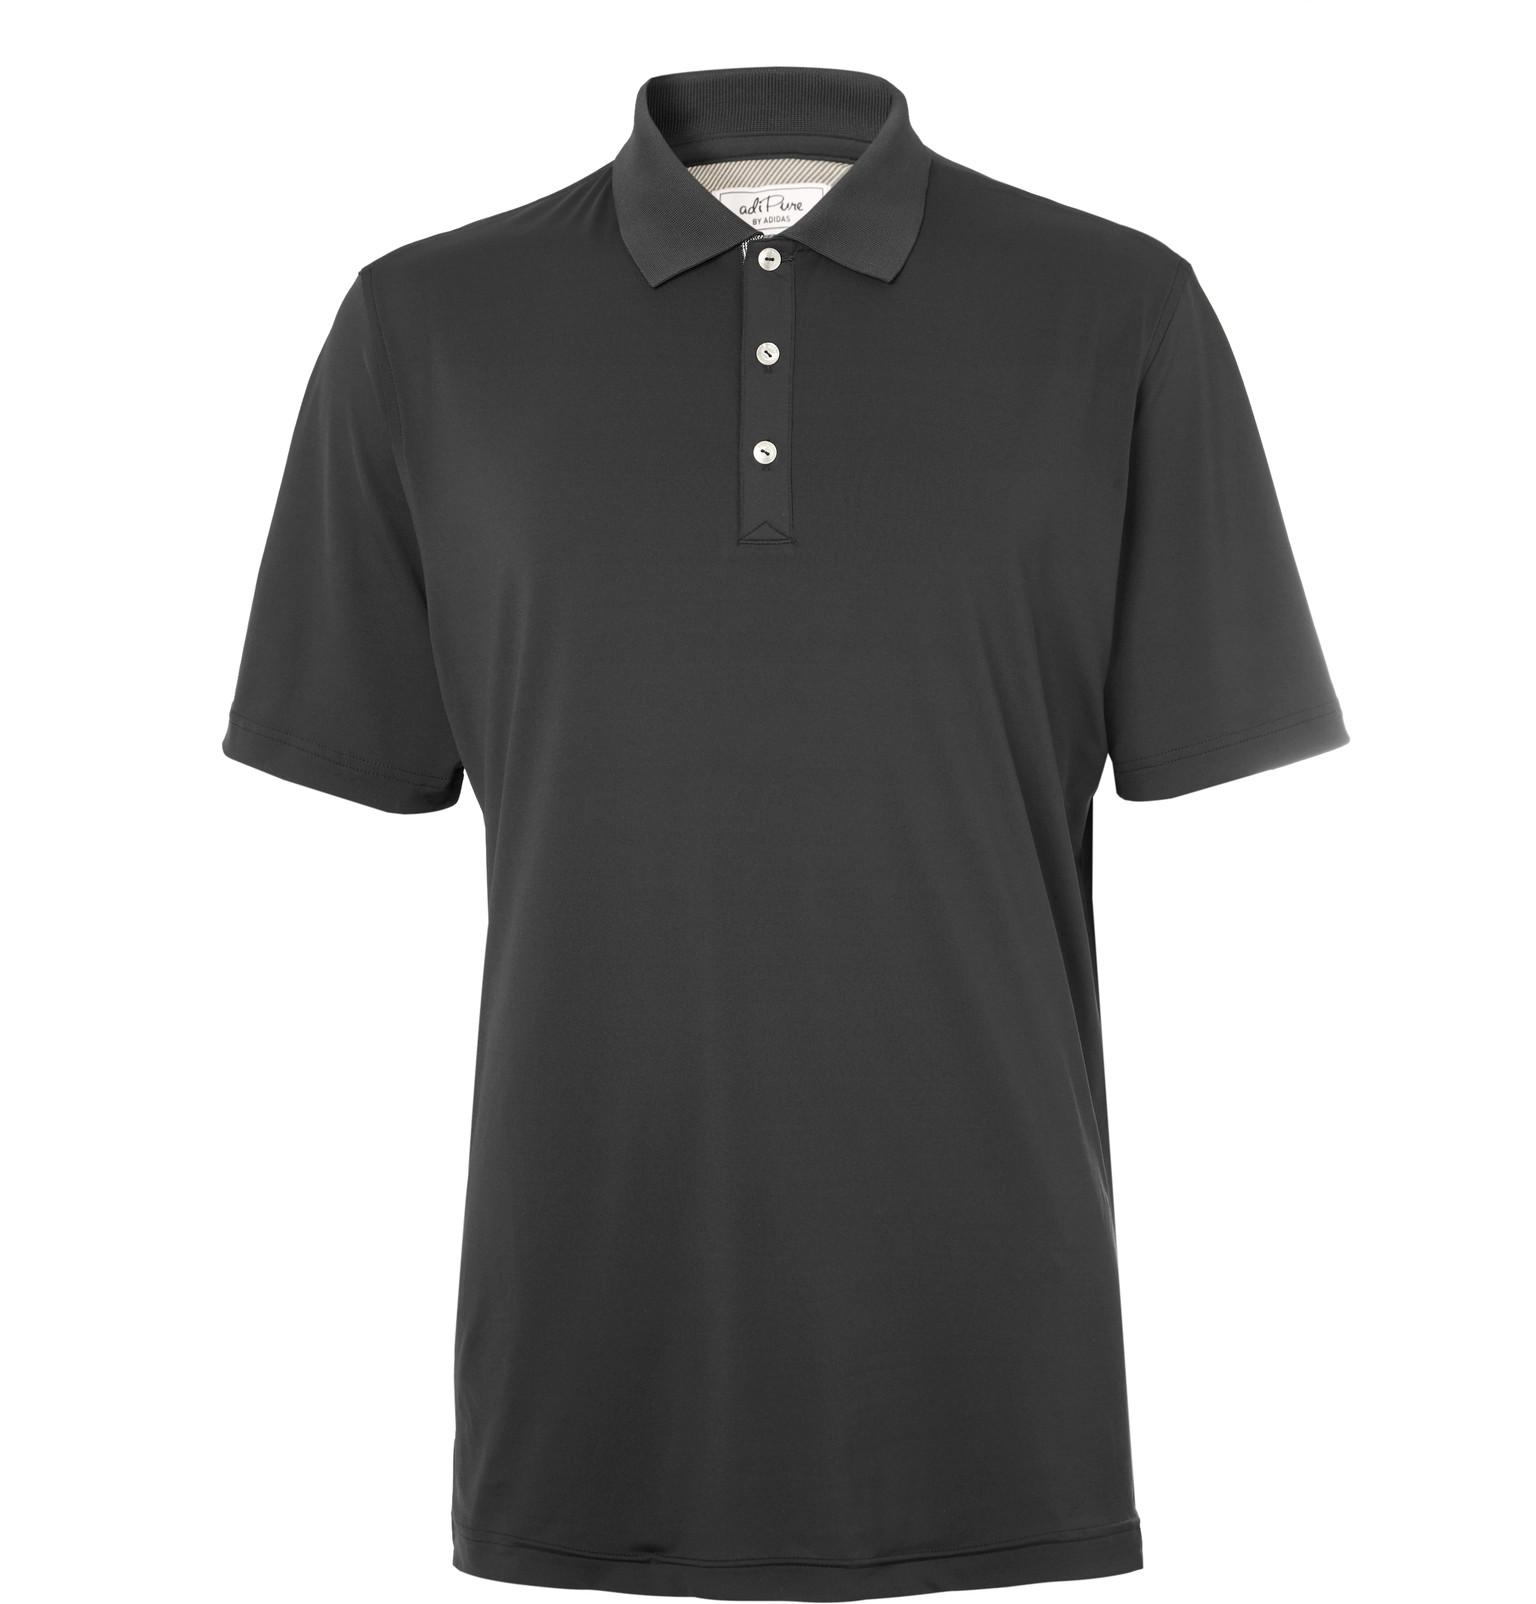 separation shoes ecfe5 6bd99 adidas Originals Adipure Stretch-jersey Golf Polo Shirt in Gray for ...